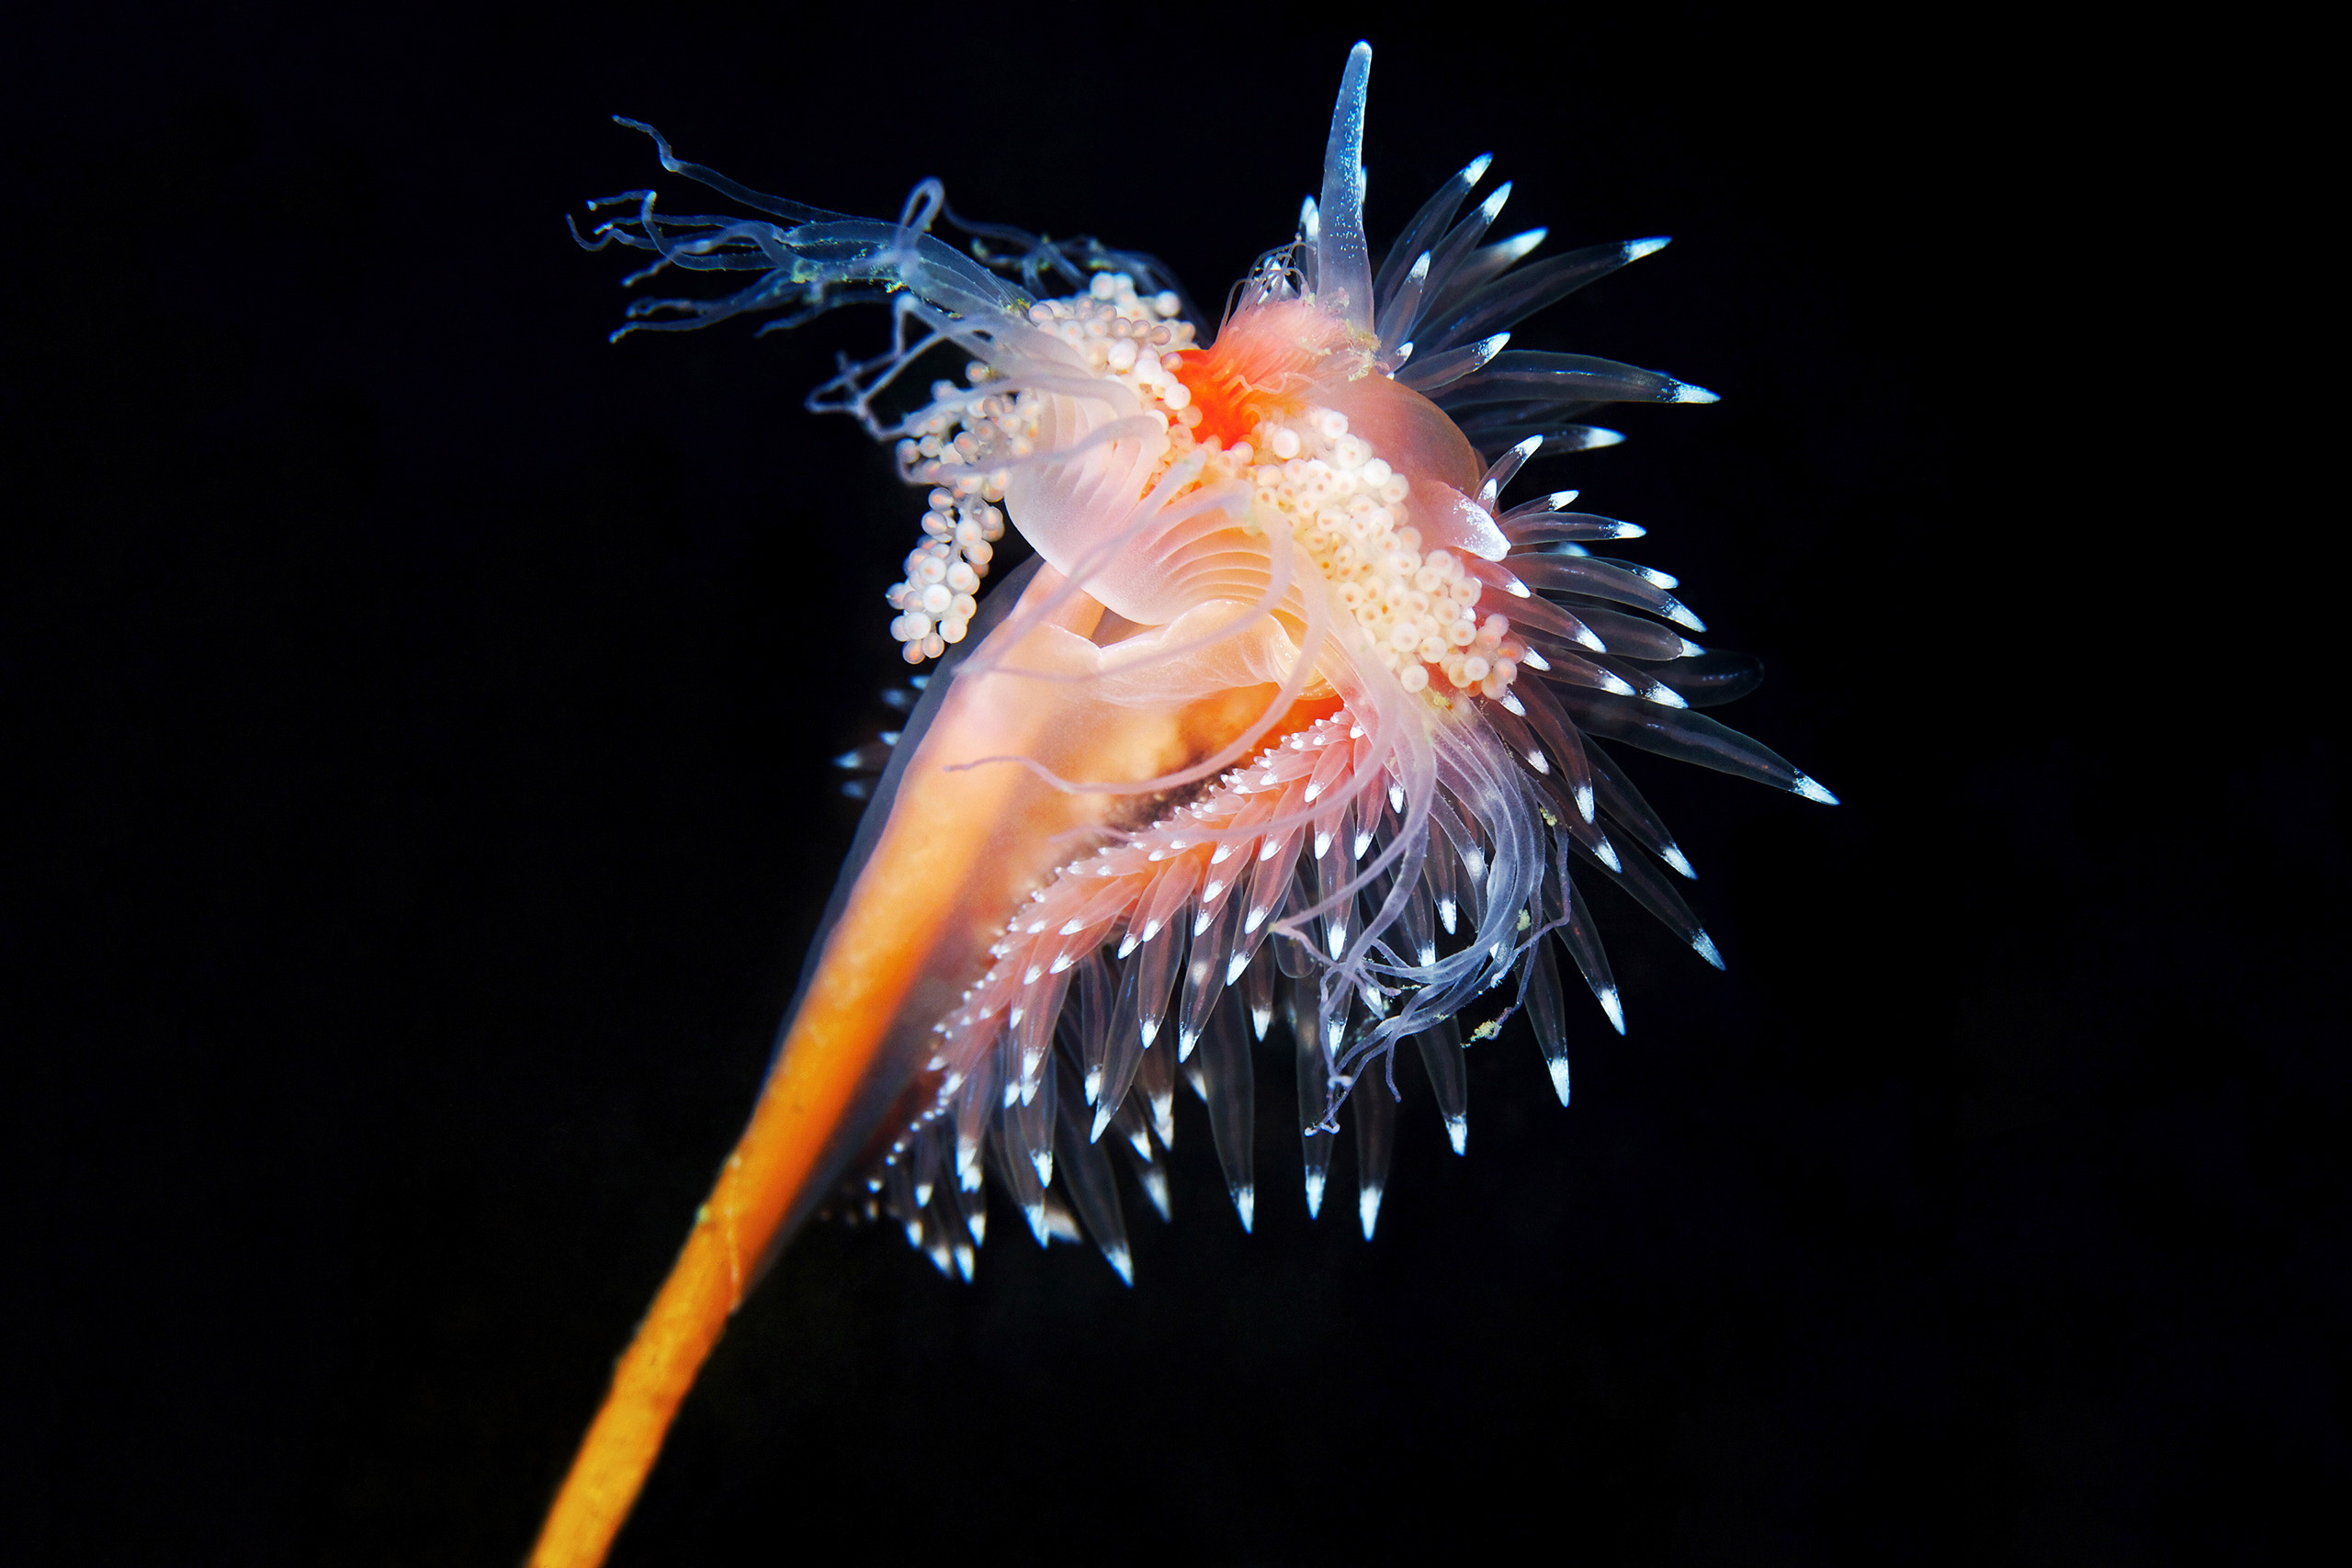 Nudibranchia – Flabellina polaris